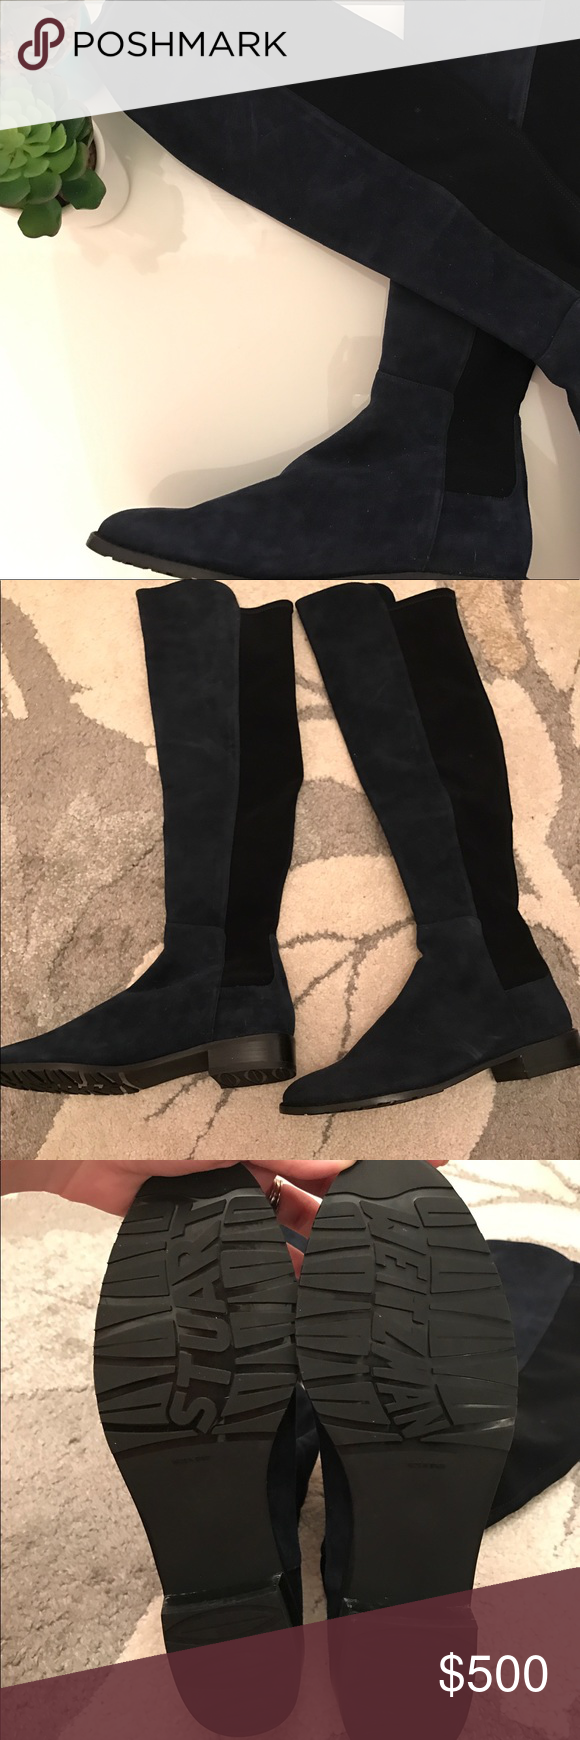 💥Brand New Stuart Weitzman Reserve Boots 💥Brand New💥 Great deal! 100% Authentic Stuart Weitzman boots. Never worn as you can see by the soles of the shoes. No box. Navy Suede and black. Stuart Weitzman Shoes Winter & Rain Boots